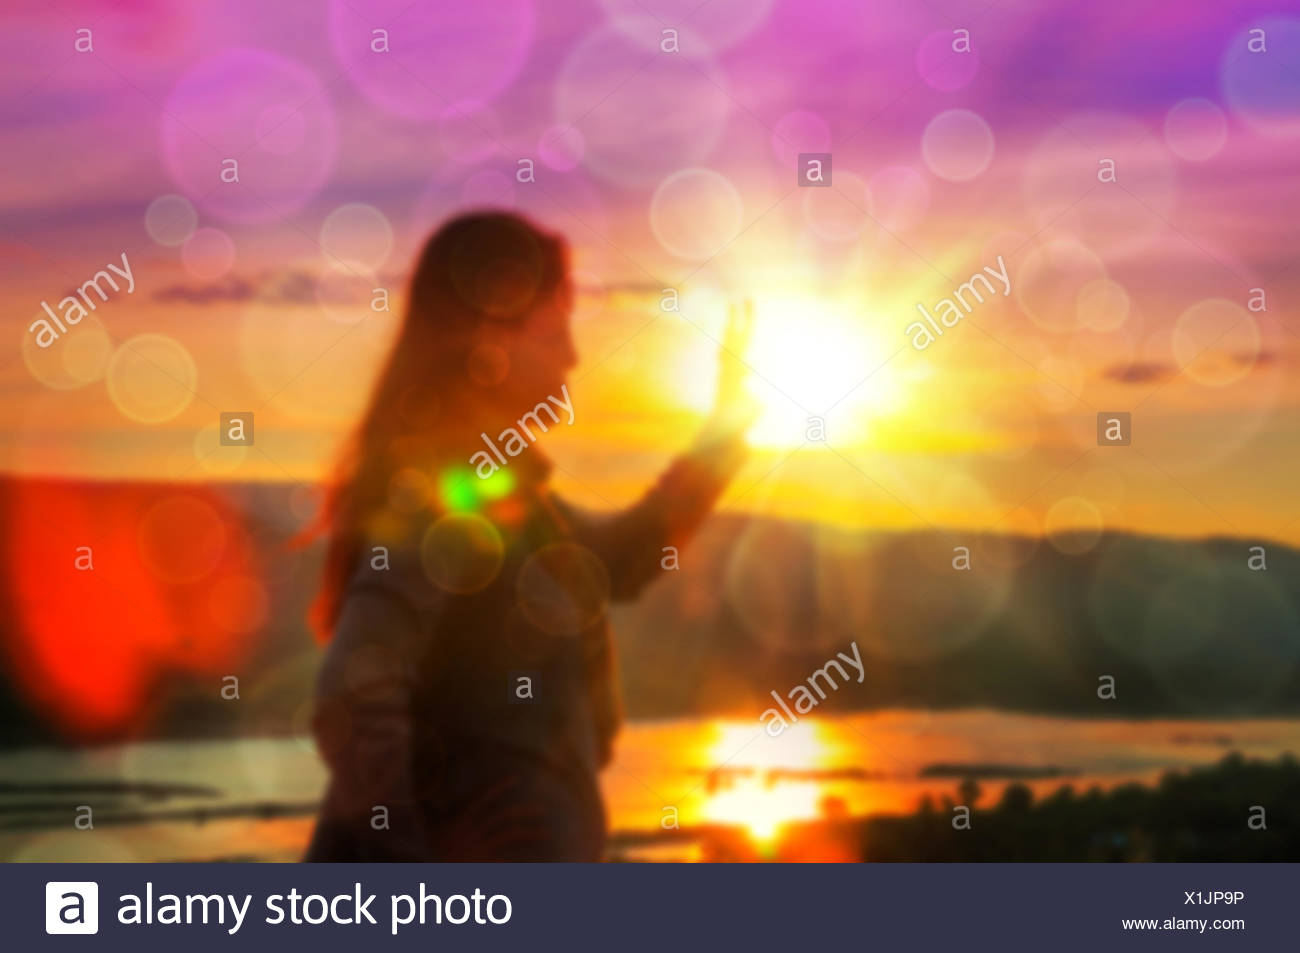 Abstract Blurred and soft photo of Women on hilltop Stock Photo